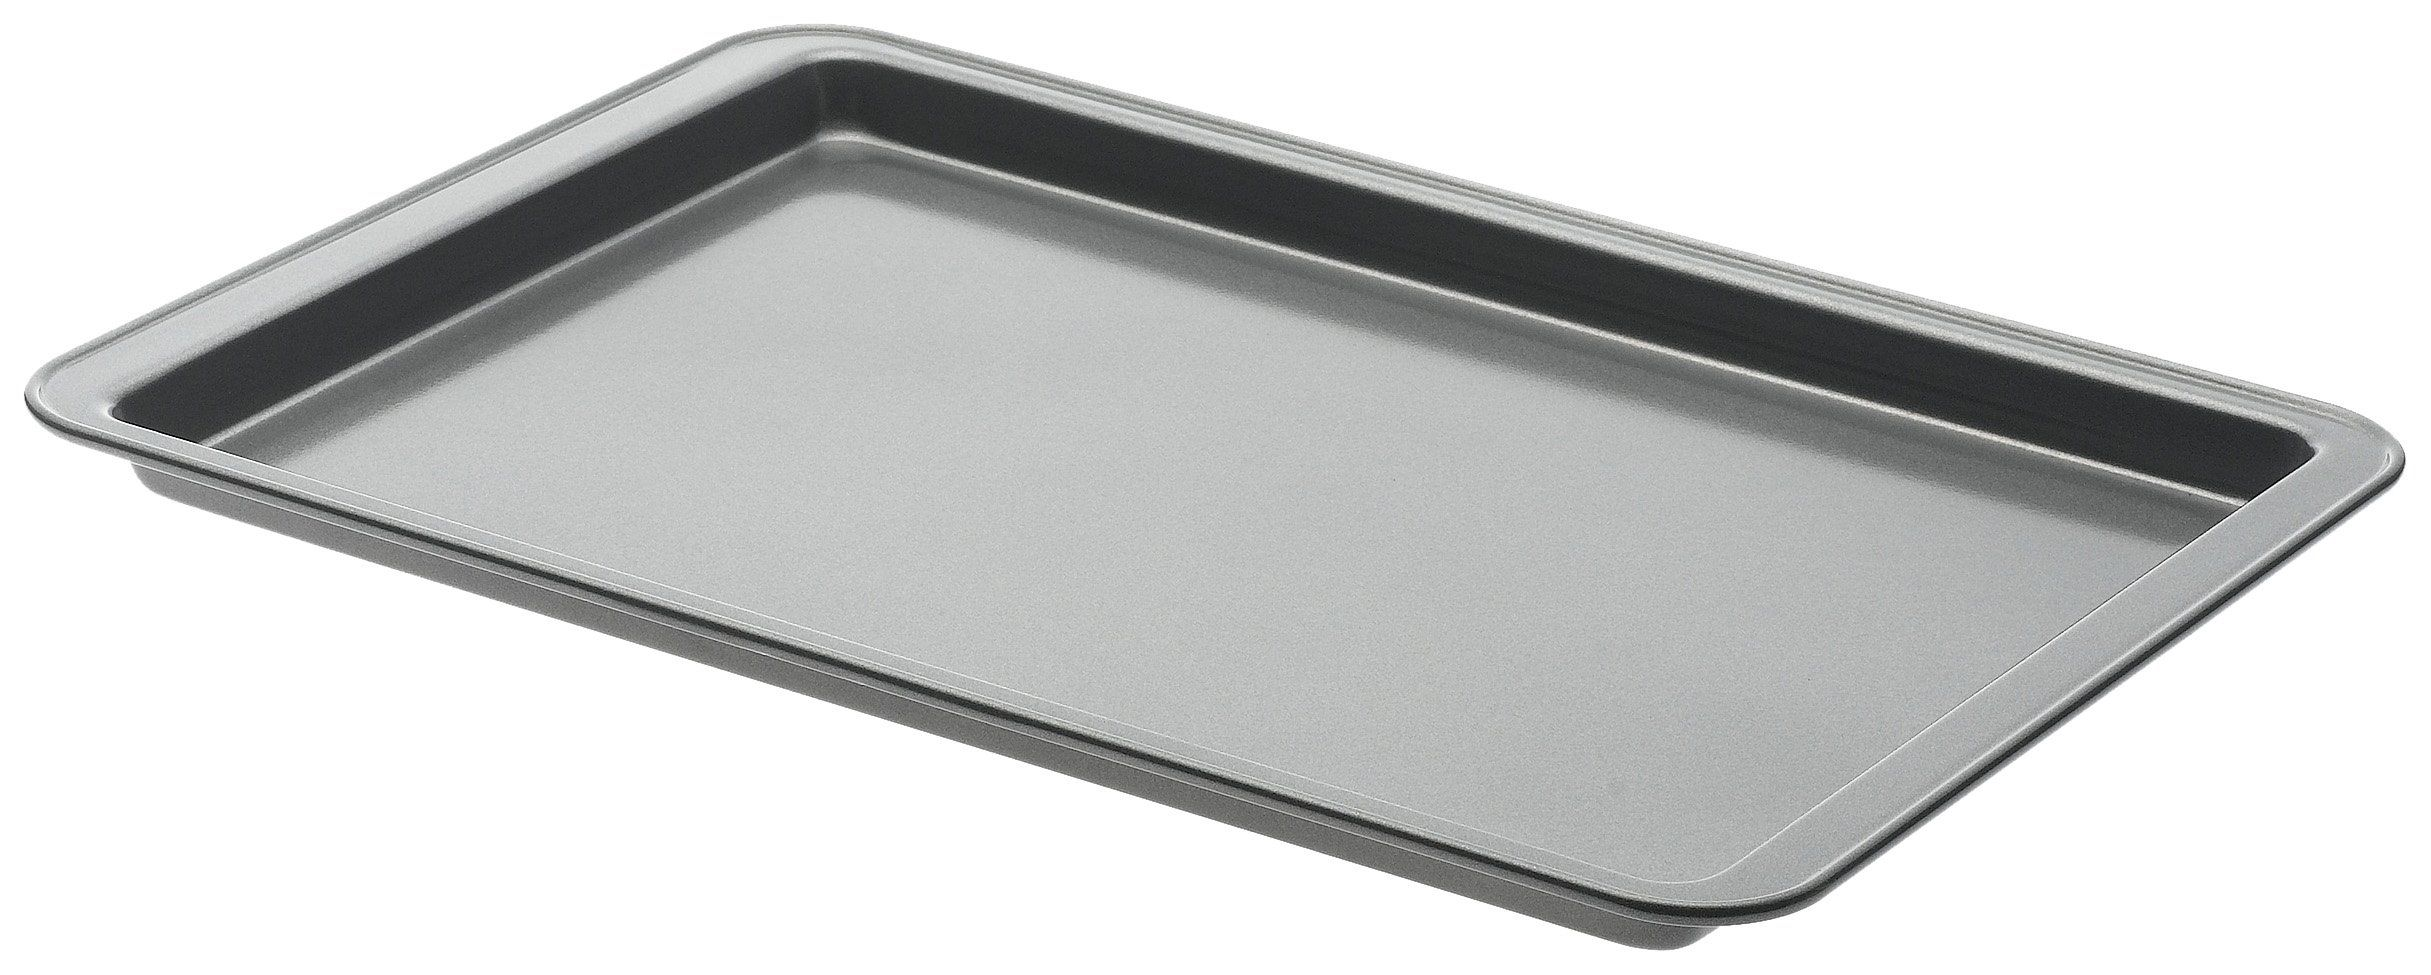 Wonderbake Small Cookie Sheet 131 4 Inch X 91 4 Inch X 1 2 Inch Be Sure To Check Out This Awesome Product This Is An Affiliate L Southern Living Christmas Small Oven Bakeware